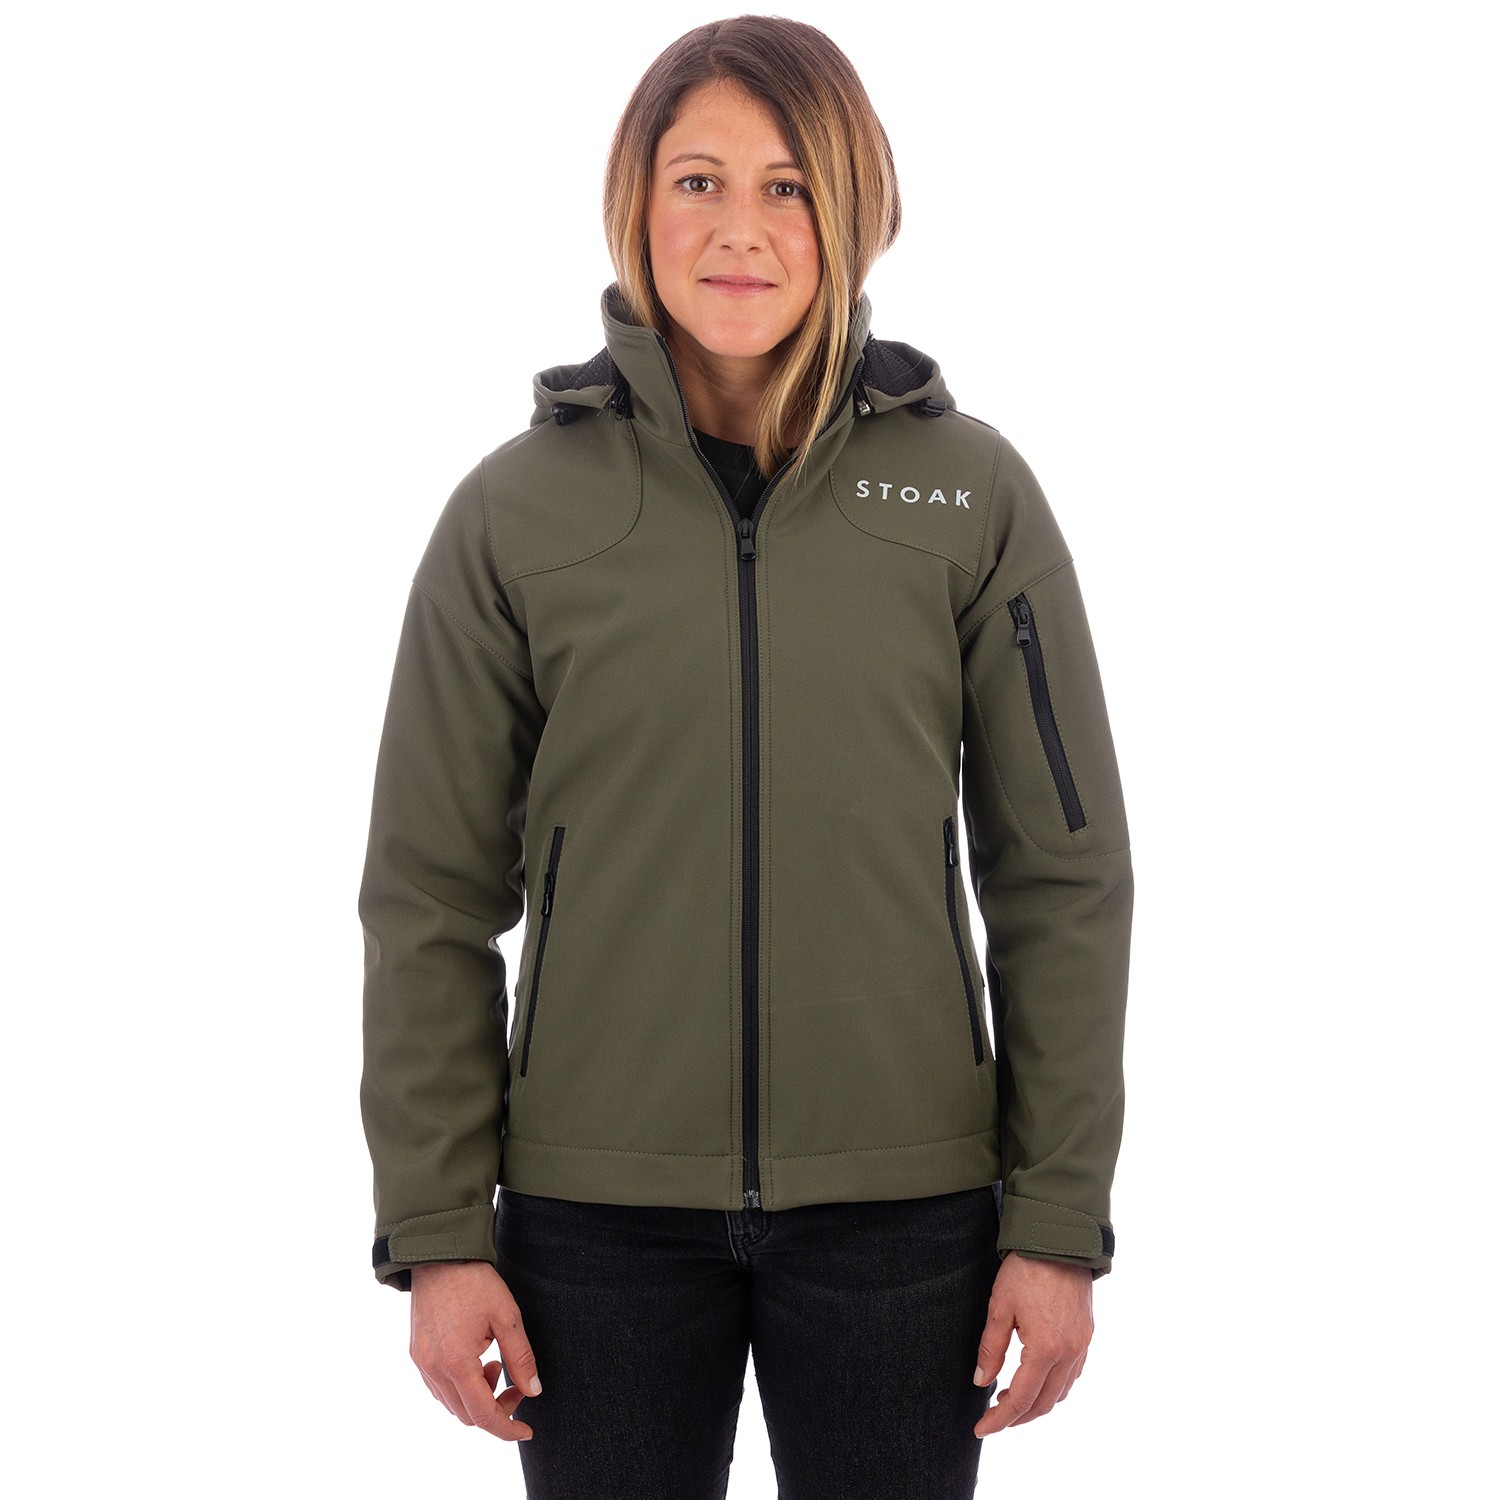 STOAK COMBAT Performance Softshell Jacket